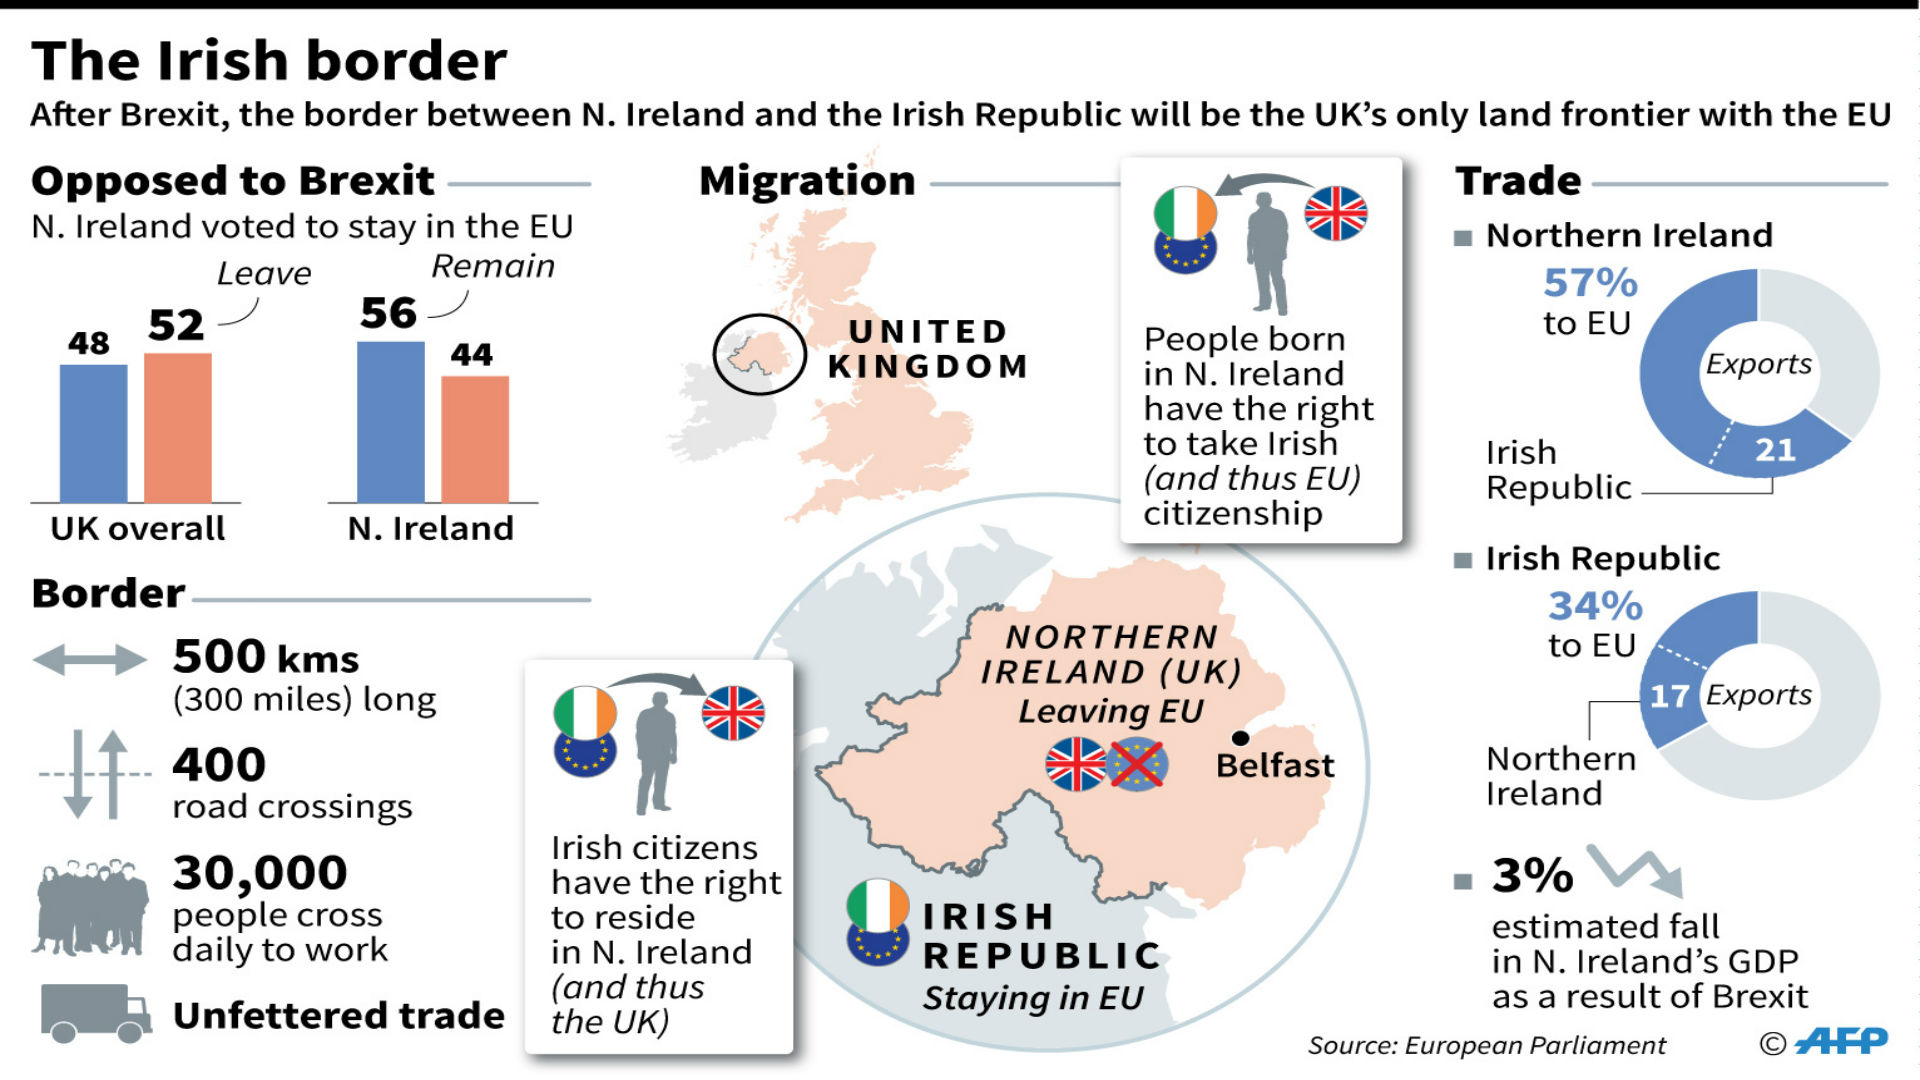 Factfile on the border between the Irish Republic and Norther Ireland, and the impact of Brexit